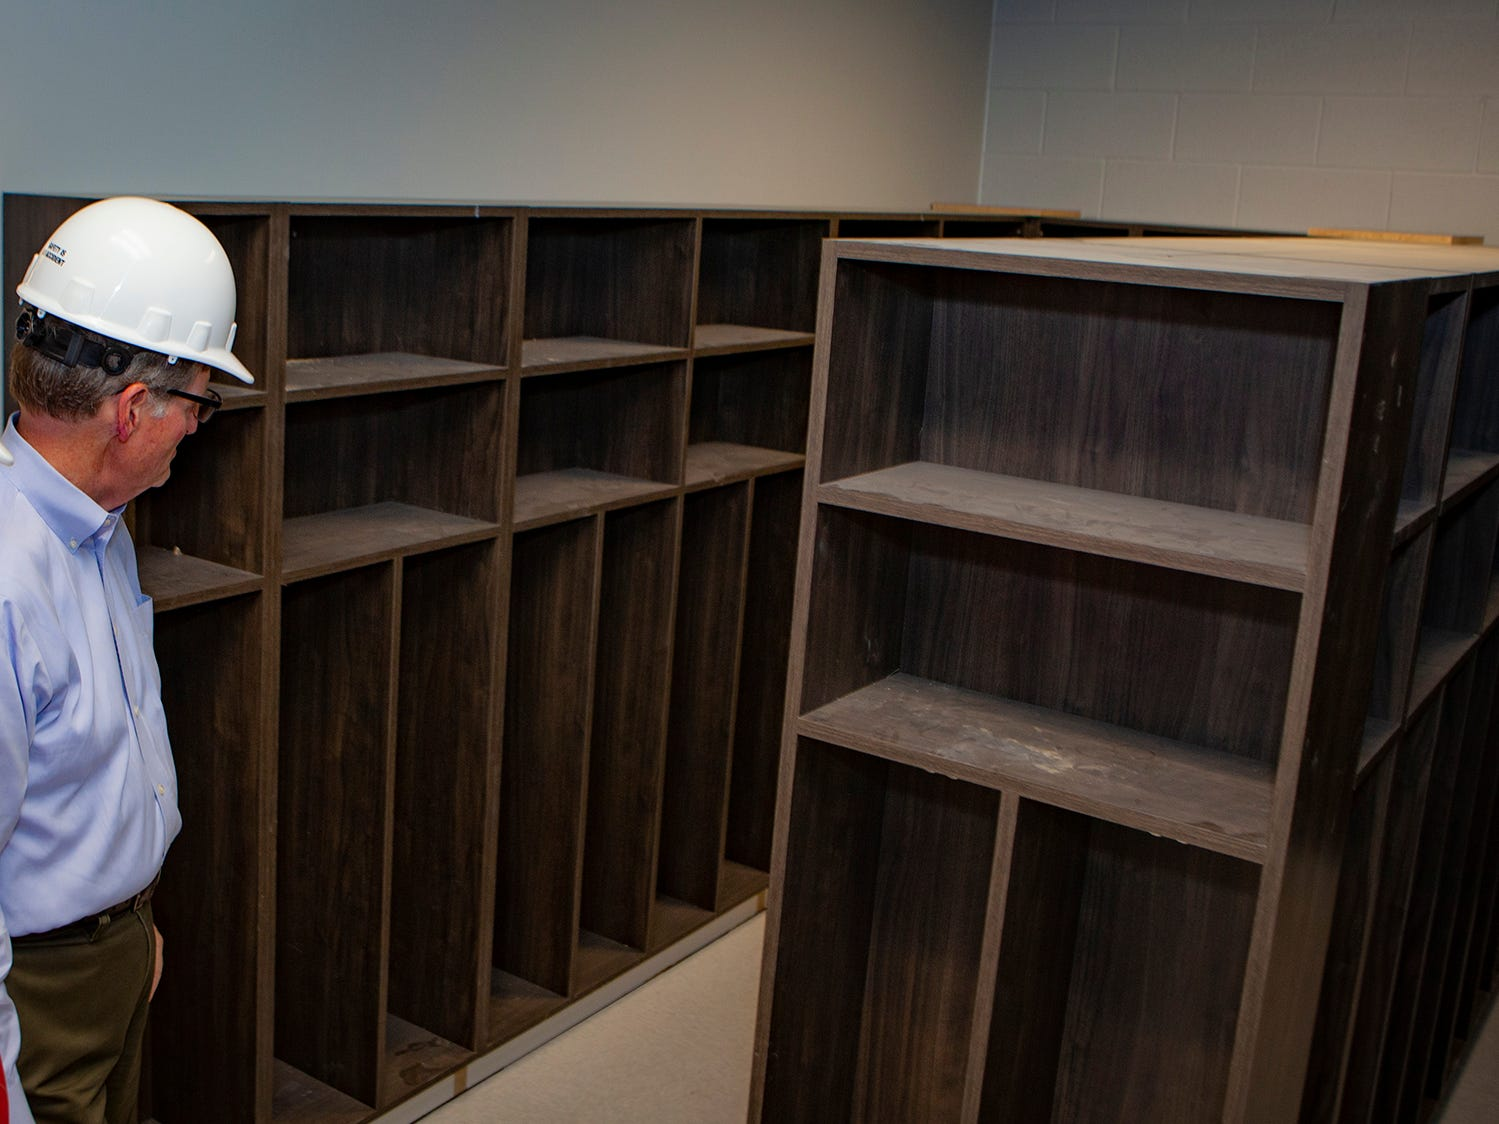 Inside a cubby room where Salem Elementary students will store their belongings. Murfreesboro City Schools' 13th campus will open in July 2019.